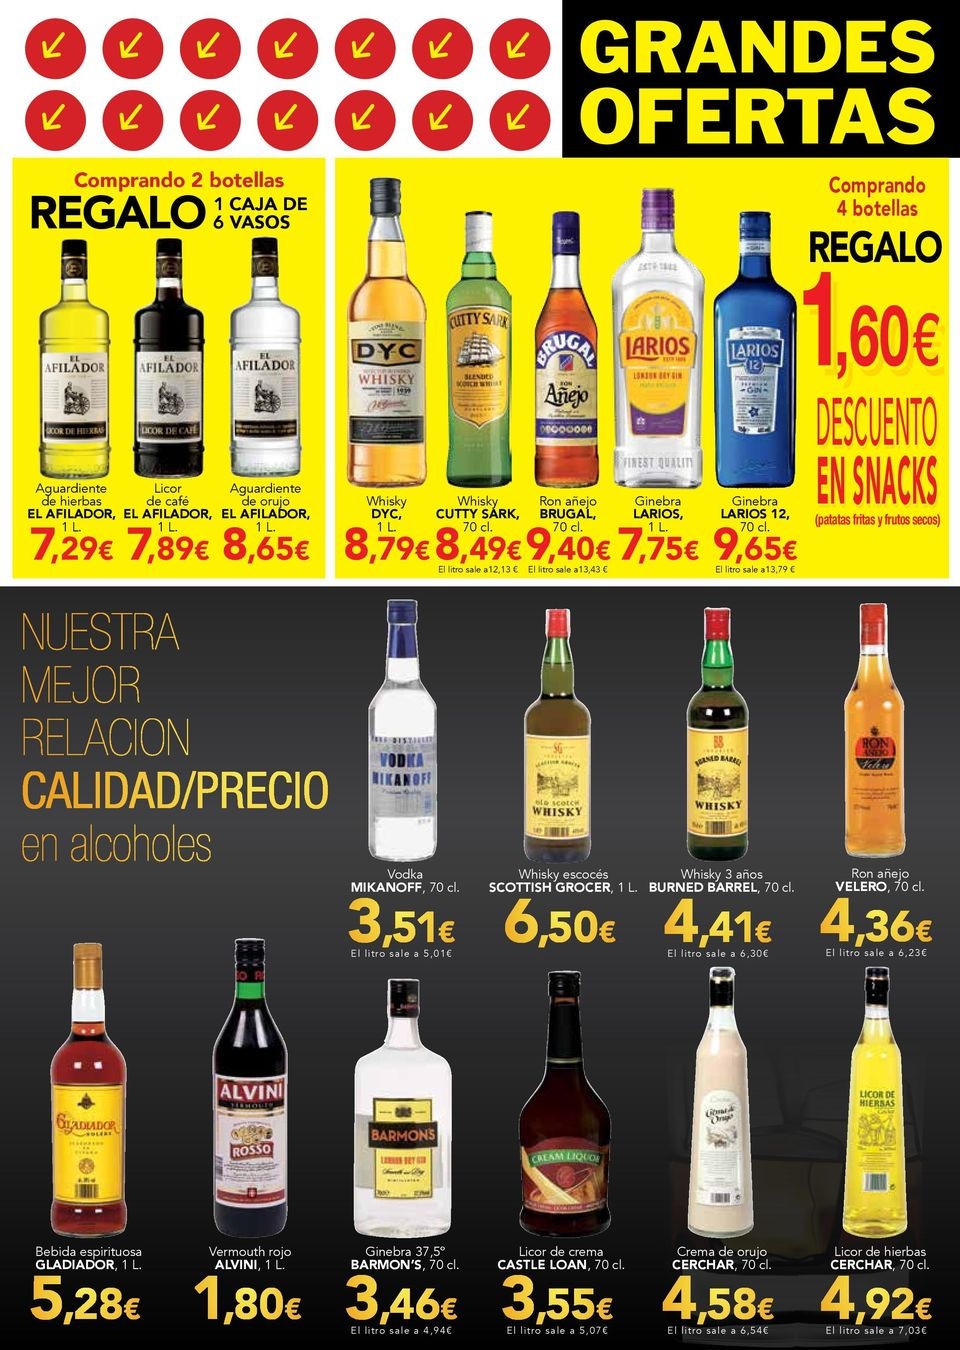 Vermouth rojo alvini, (patatas fritas y frutos secos) El litro sale a13,79 Whisky escocés Whisky 3 años scottish grocer, burned barrel, Ron añejo velero, 3,51 6,50 4,41 4,36 El lit ro sale a 5,01